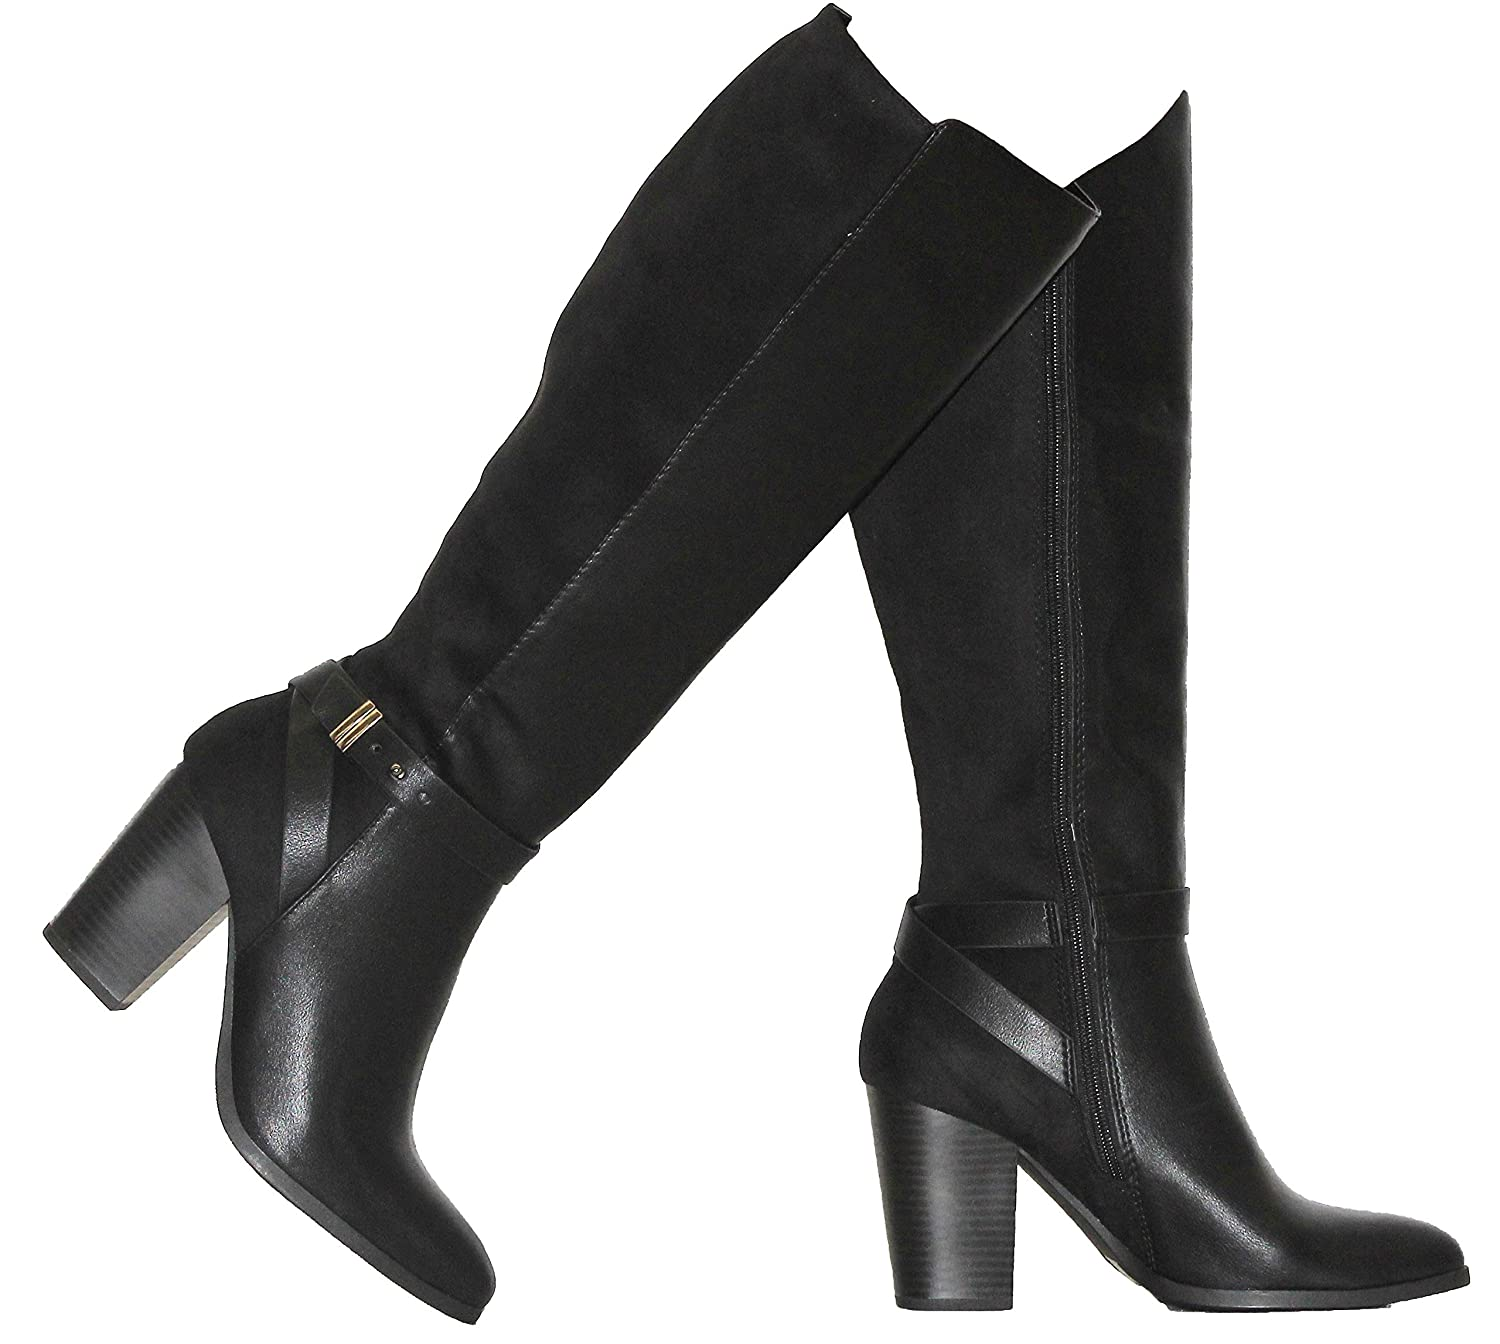 Black Pu Sue MVE shoes Women's Chunky Heel Ankle Strap Classy Knee High Boots